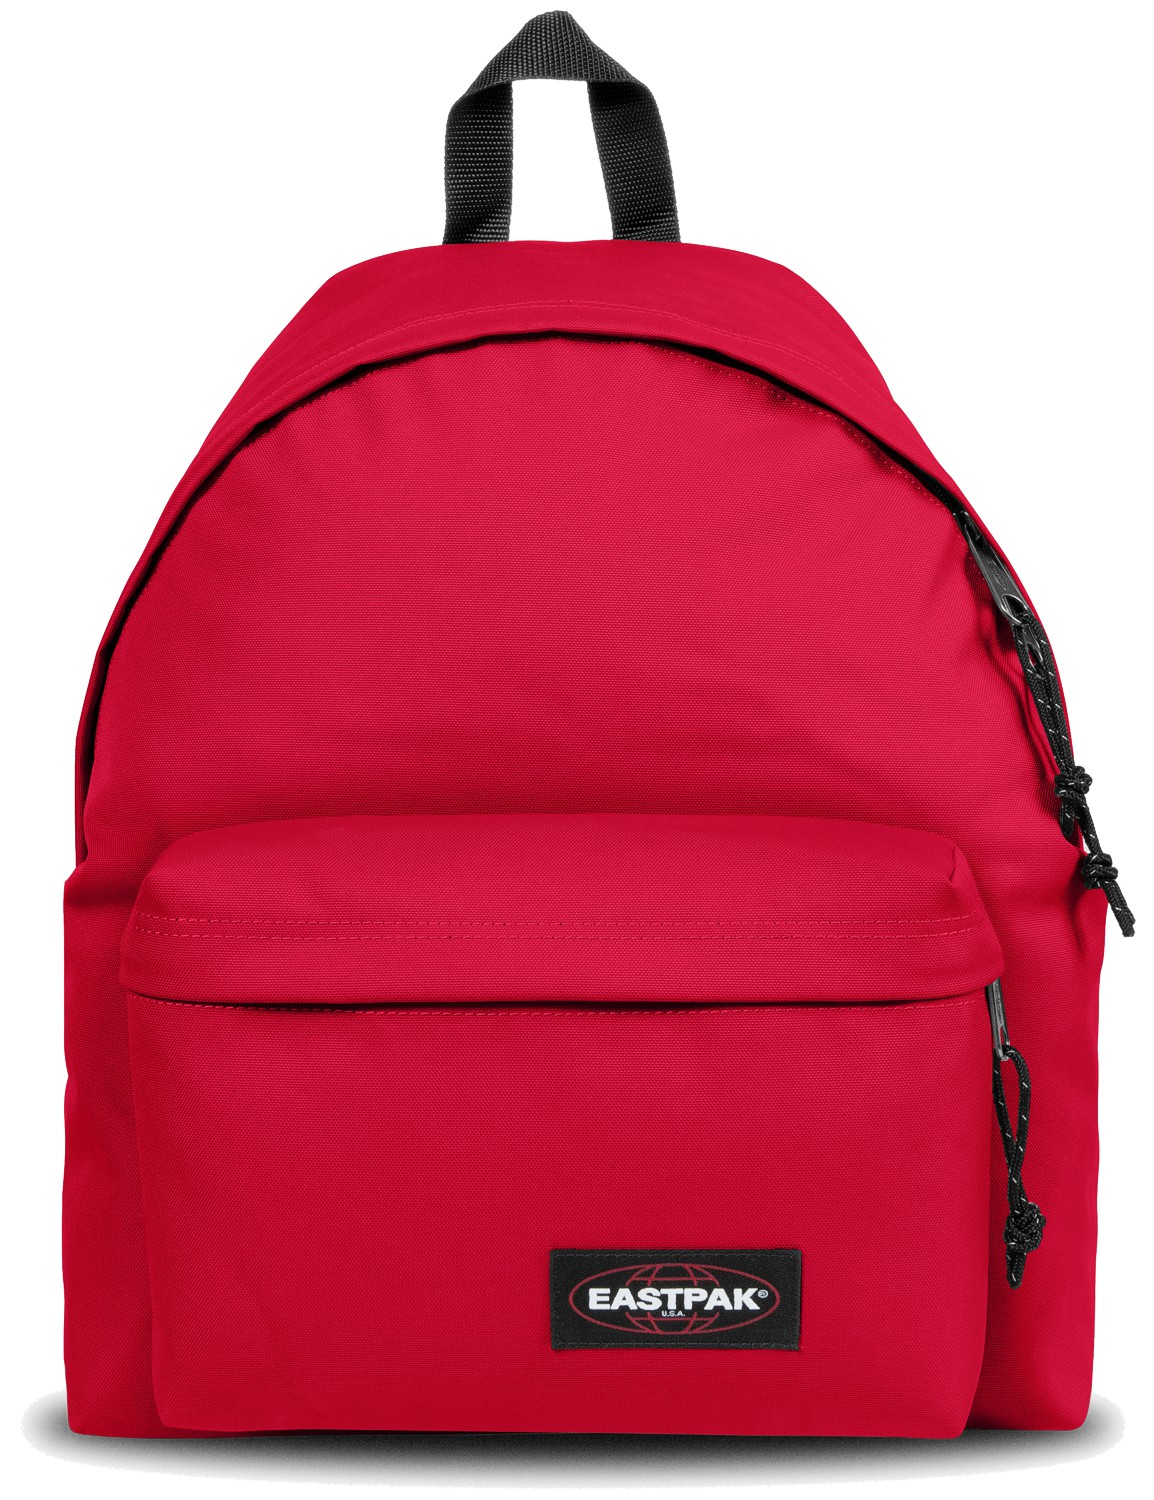 Eastpak Rucksack »Padded Pak'r« Sailor Red Rot